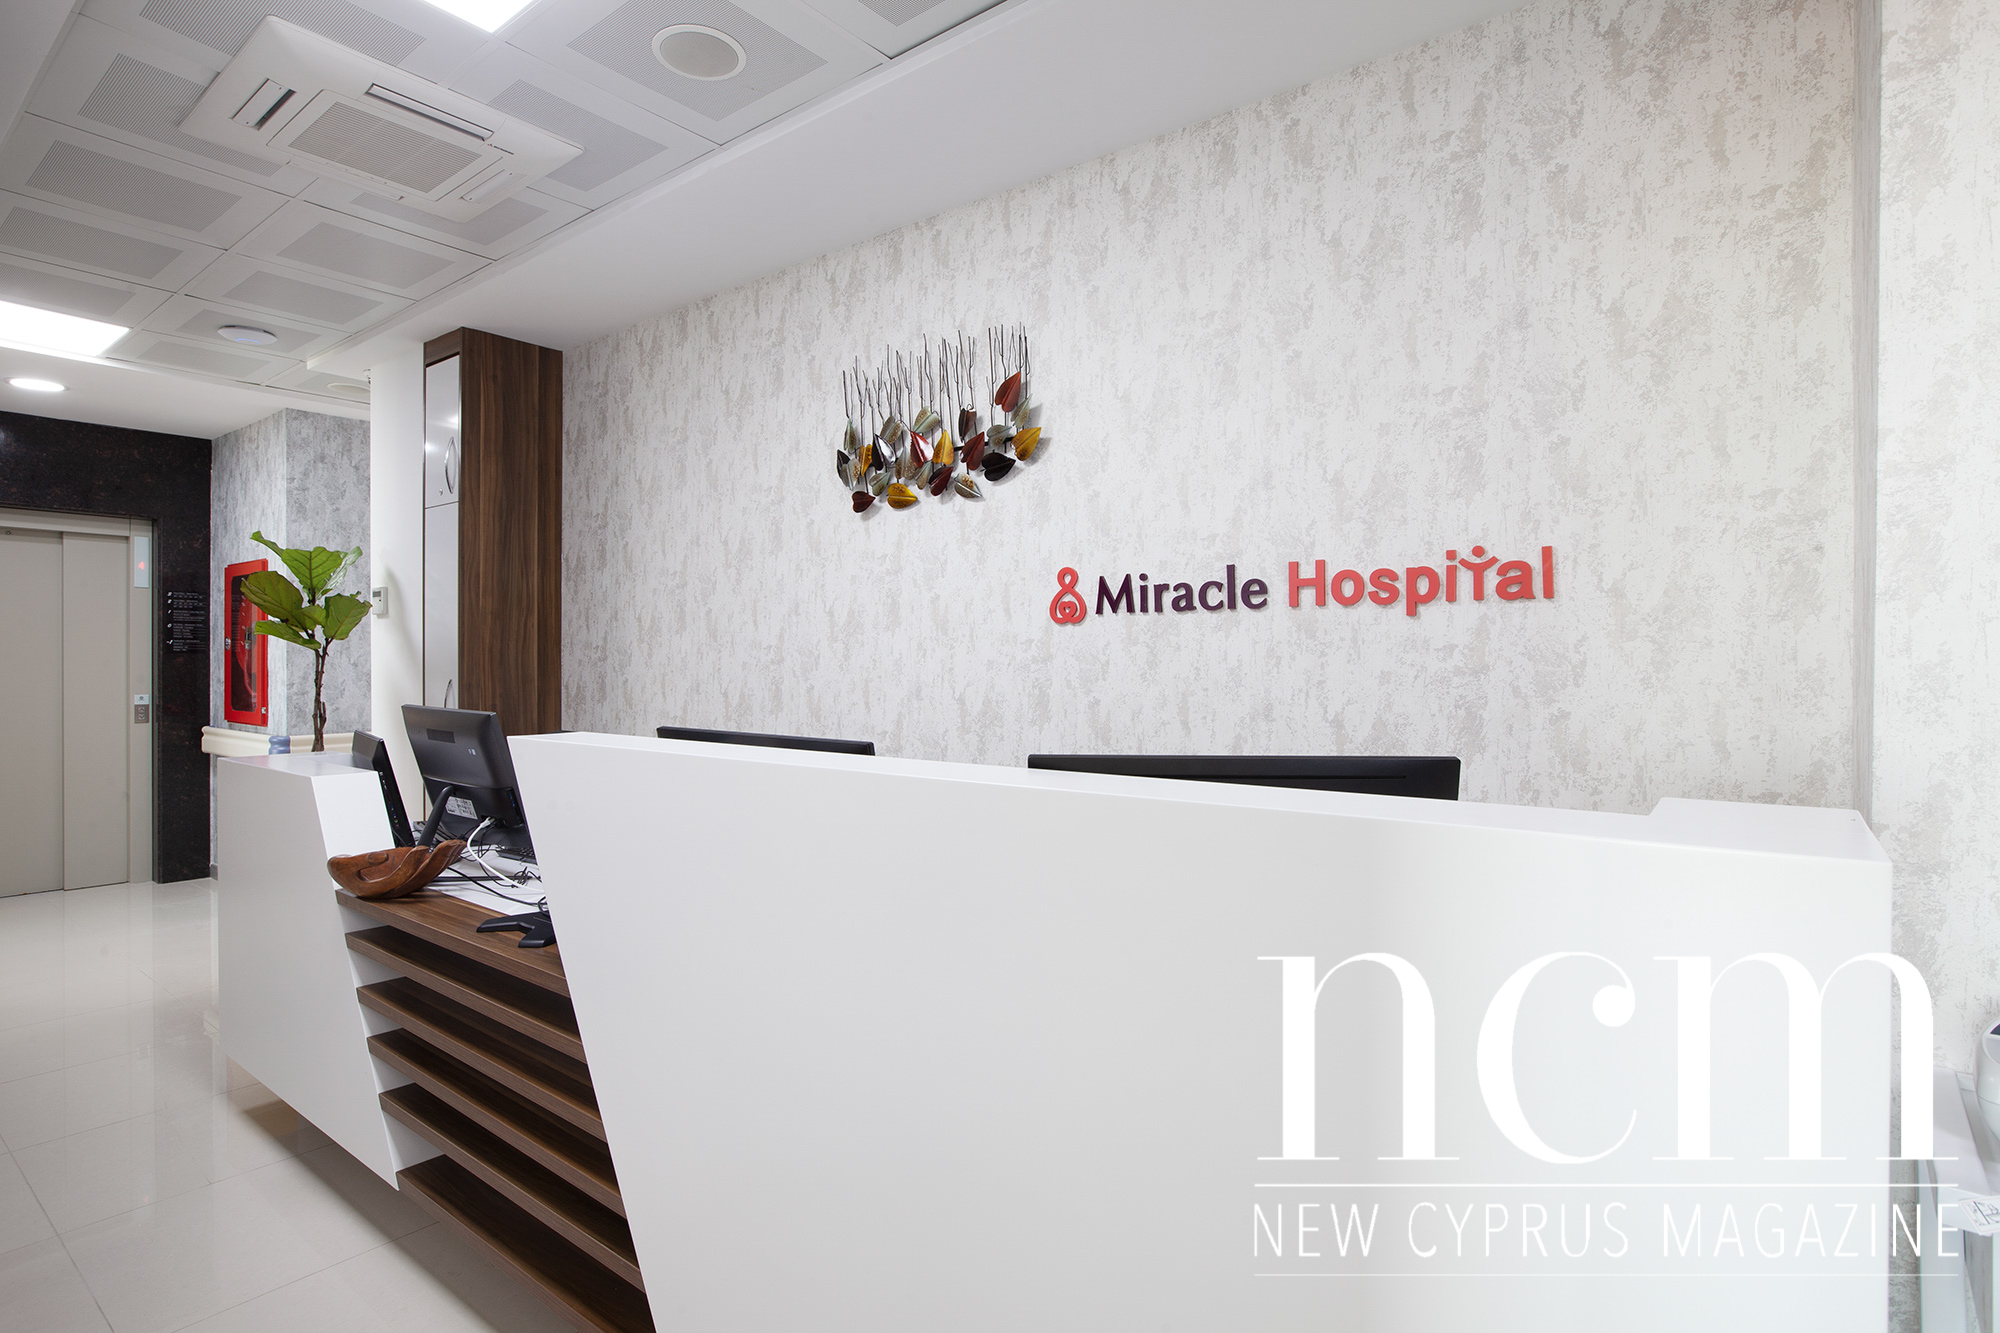 North Cyprus IVF Miracle IVF Hospital